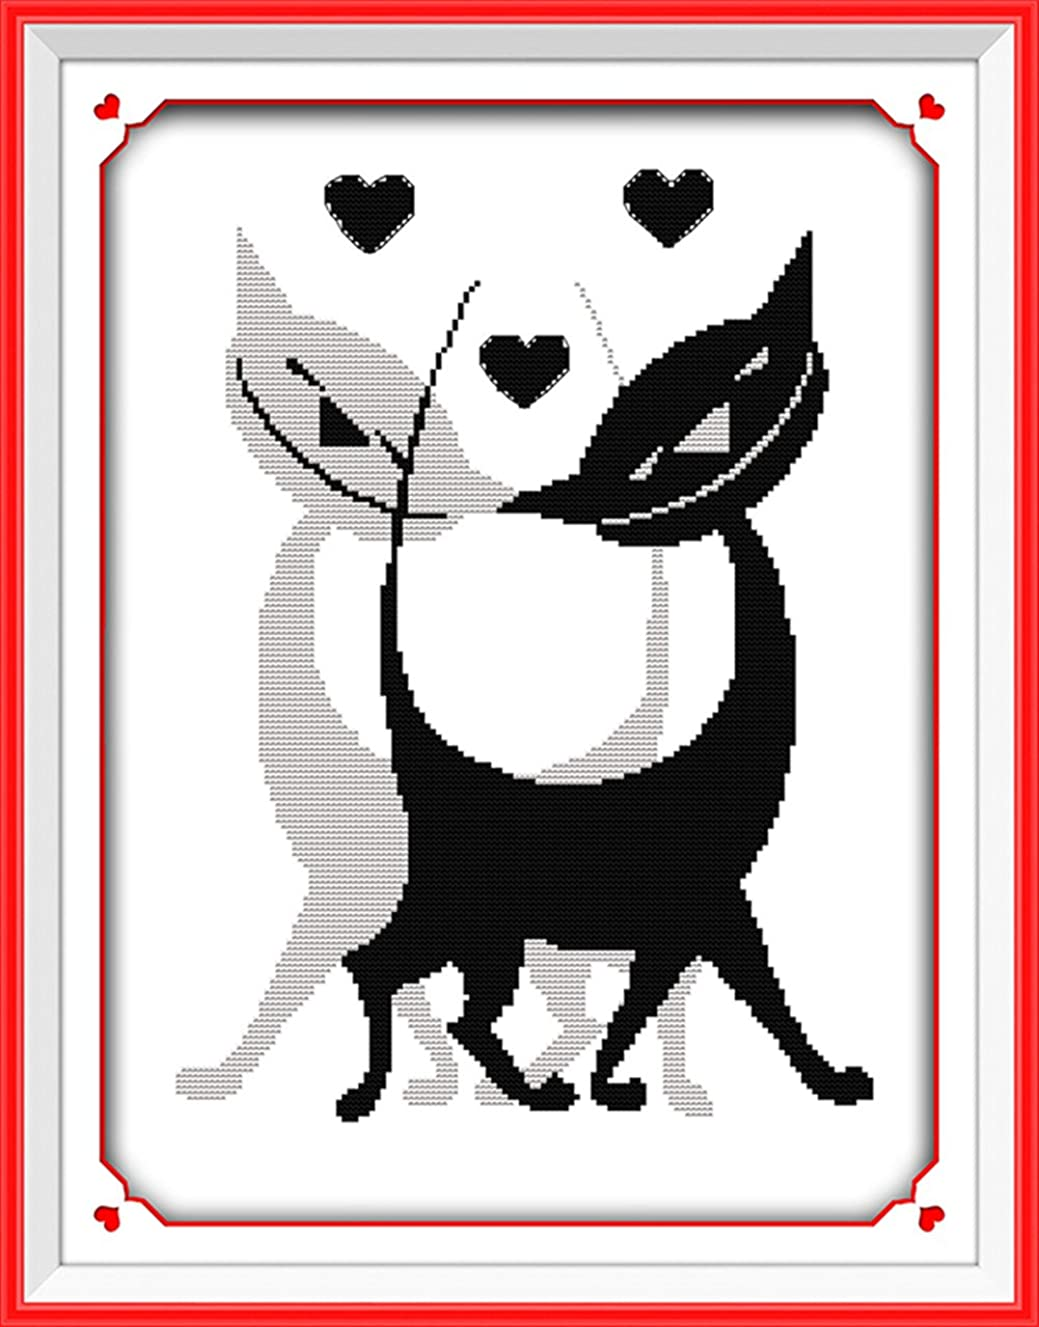 CaptainCrafts New Stamped Cross Stitch Kits Preprinted Pattern Counted Embroidery Starter Kits for Beginner Kids and Adults - Black White Lover Cats - DIY Artwork Needlecrafts (STAMPED)